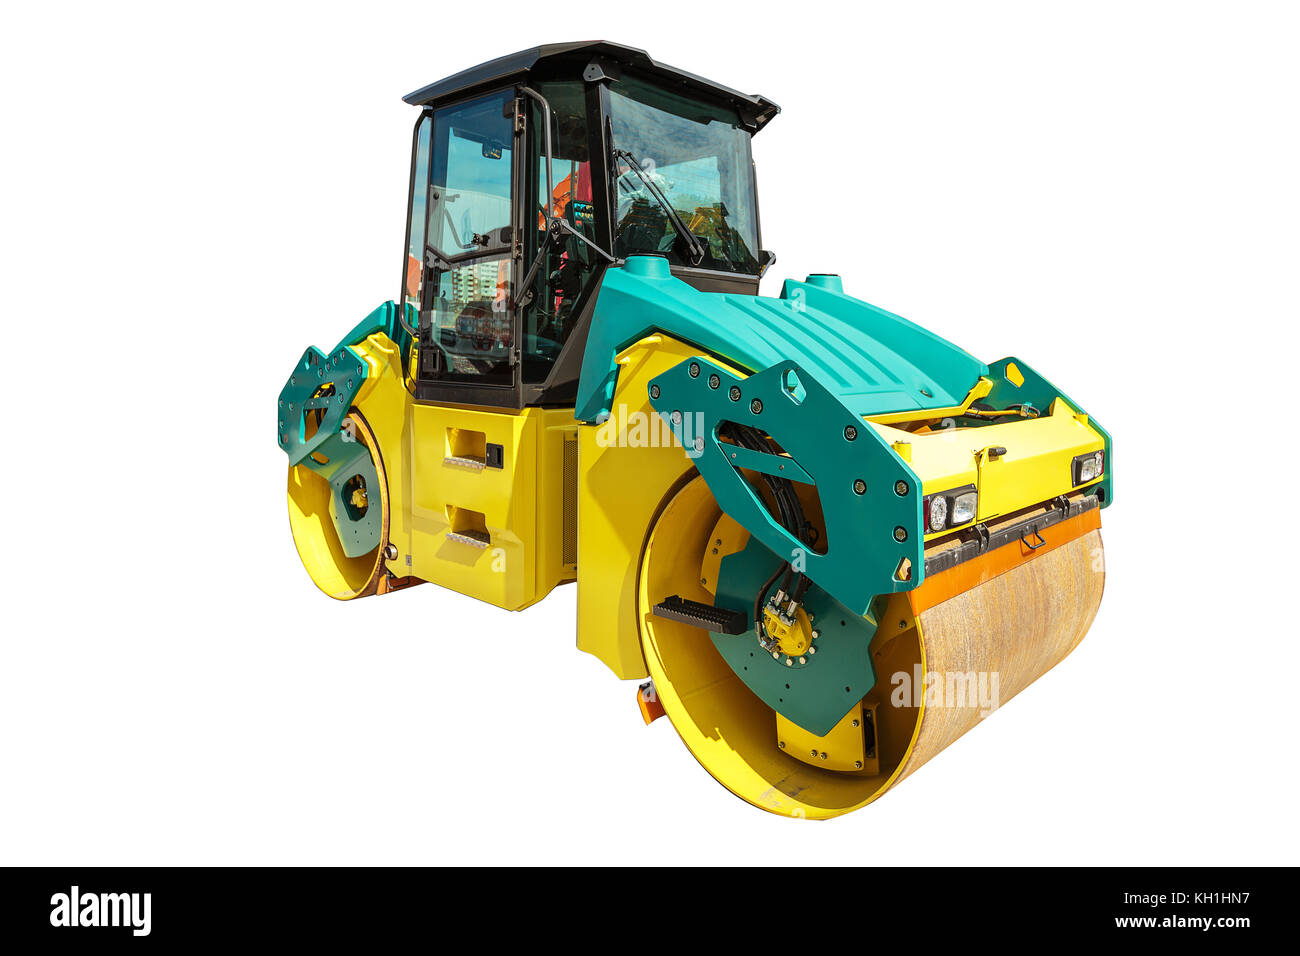 New road roller machine isolated on a white background with clipping path - Stock Image